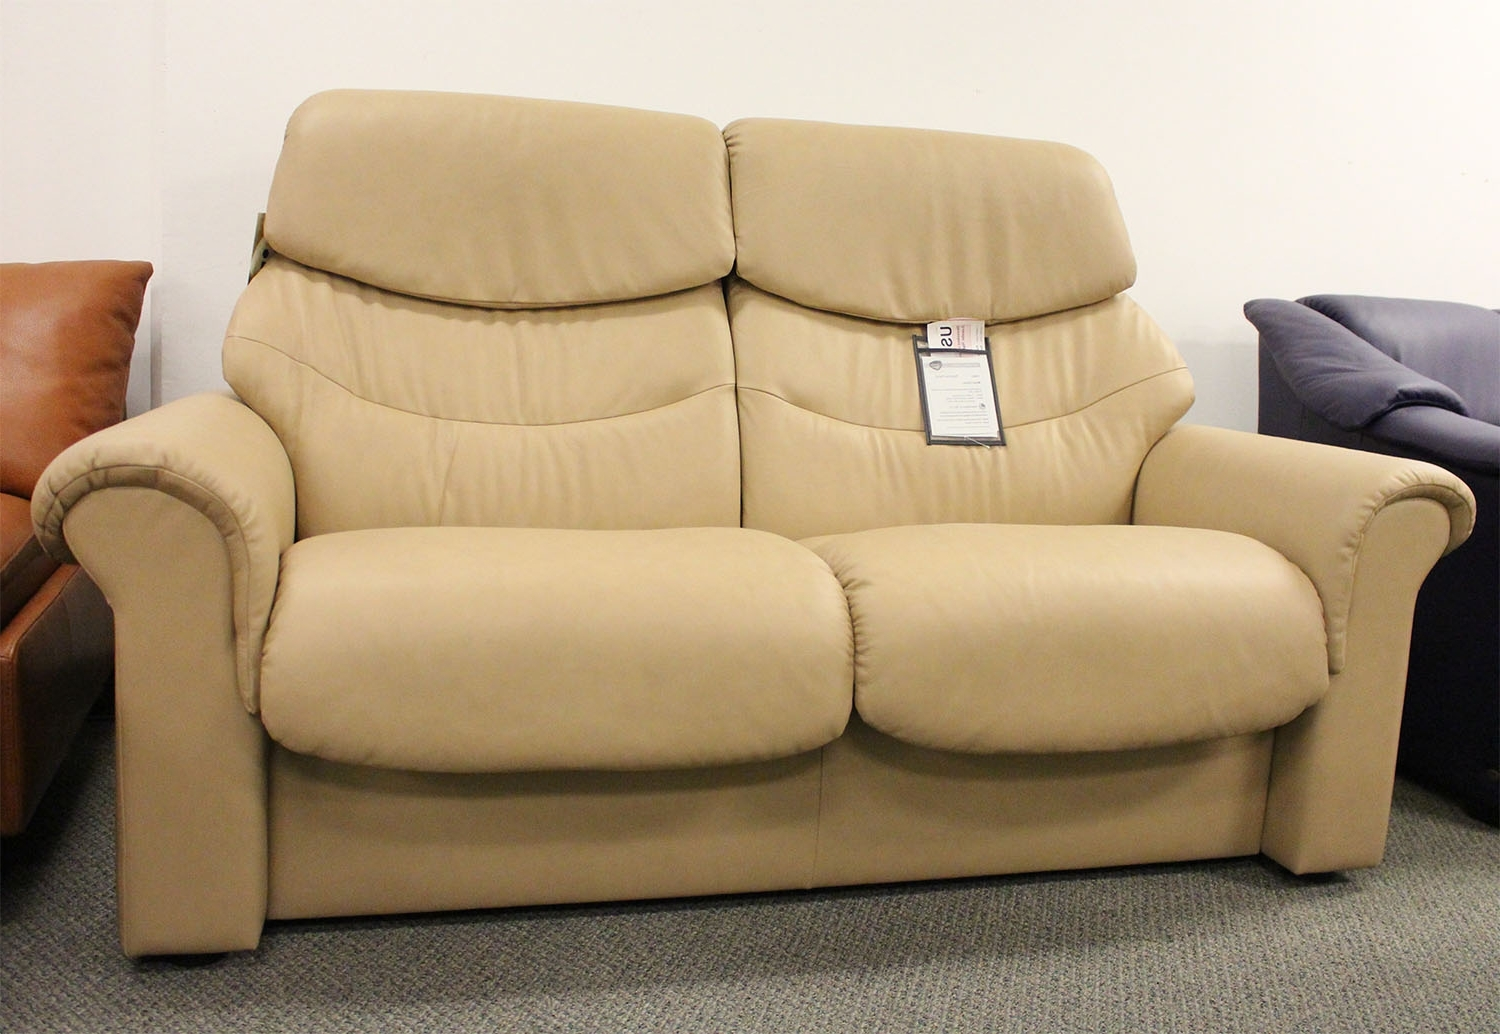 High Back Sectional Sofas – It Is Better To Opt For Leather Or Fabric? Within Well Known High Point Nc Sectional Sofas (View 3 of 15)